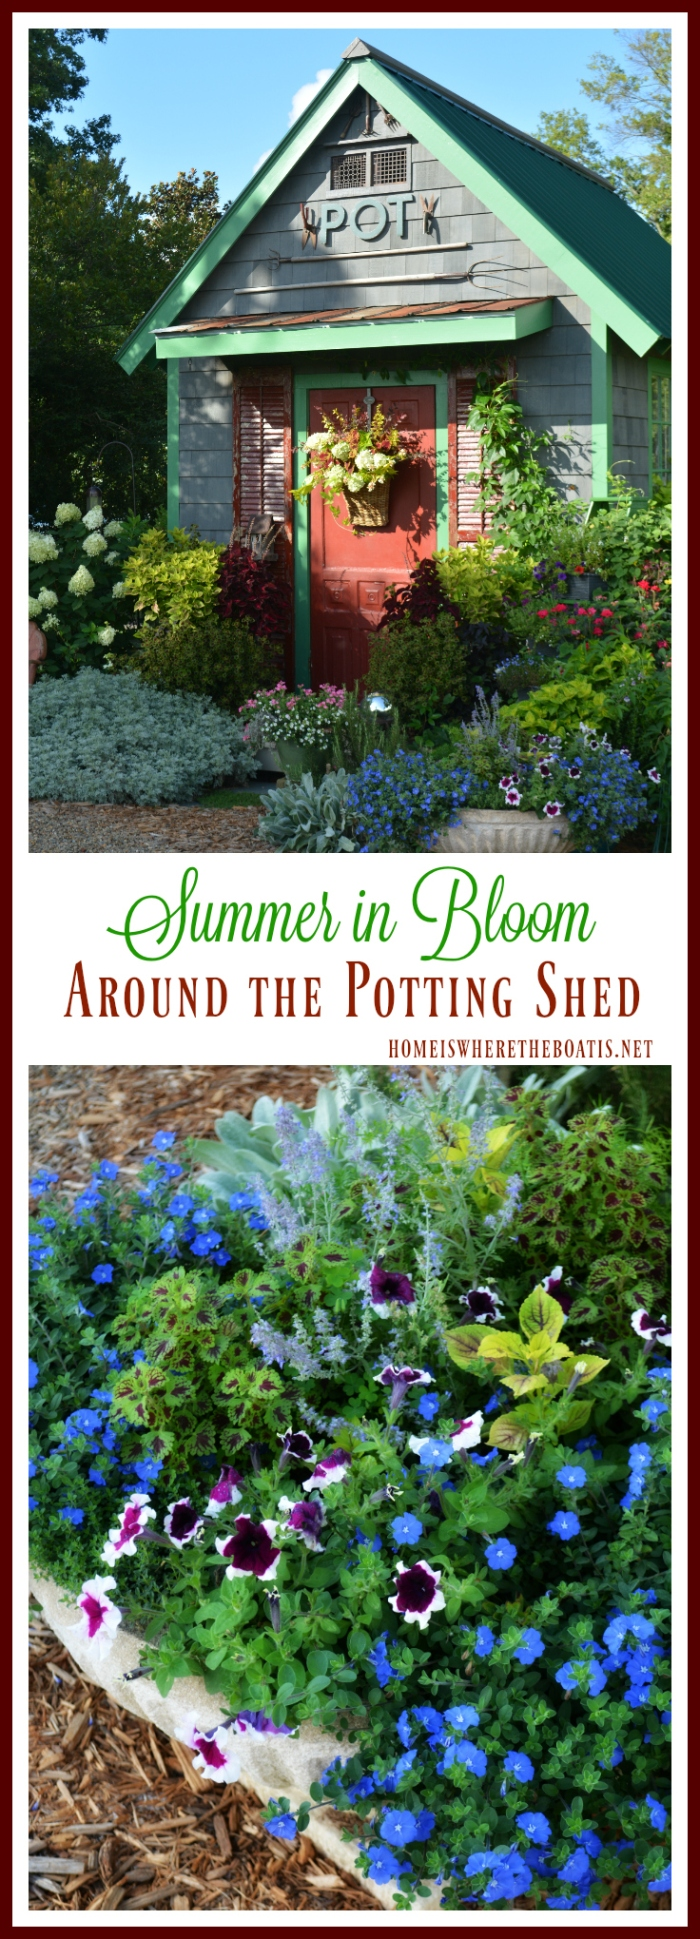 Summer in Bloom Around the Potting Shed